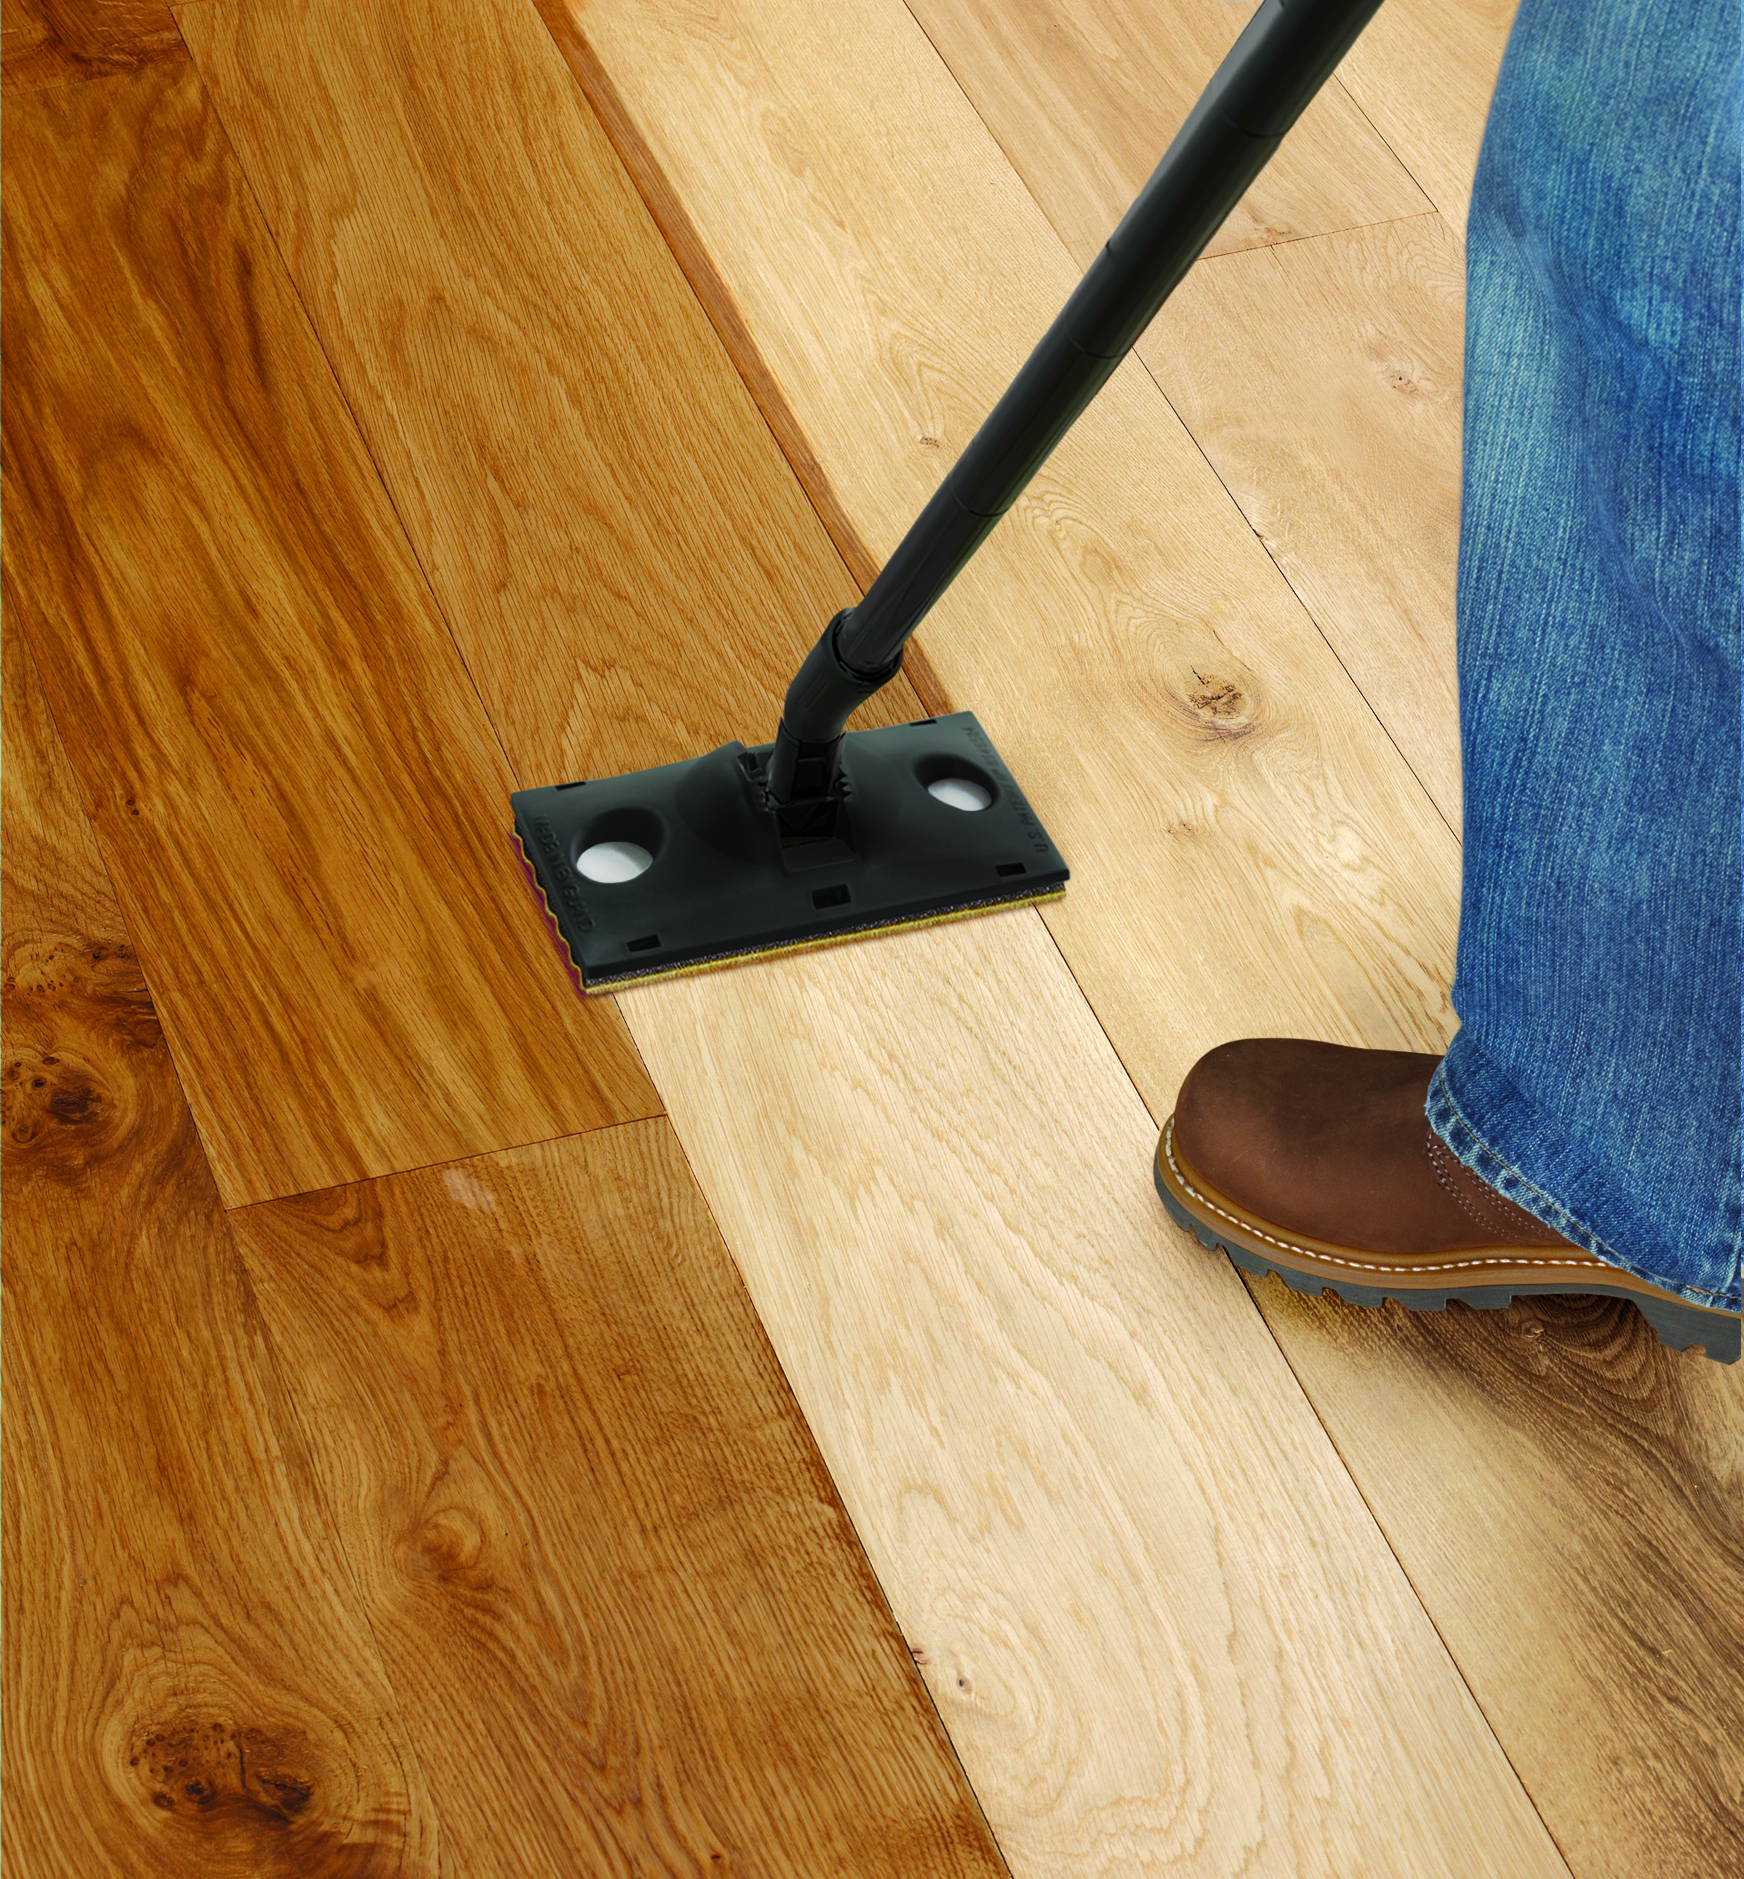 How To Prepare Look After Your Floor